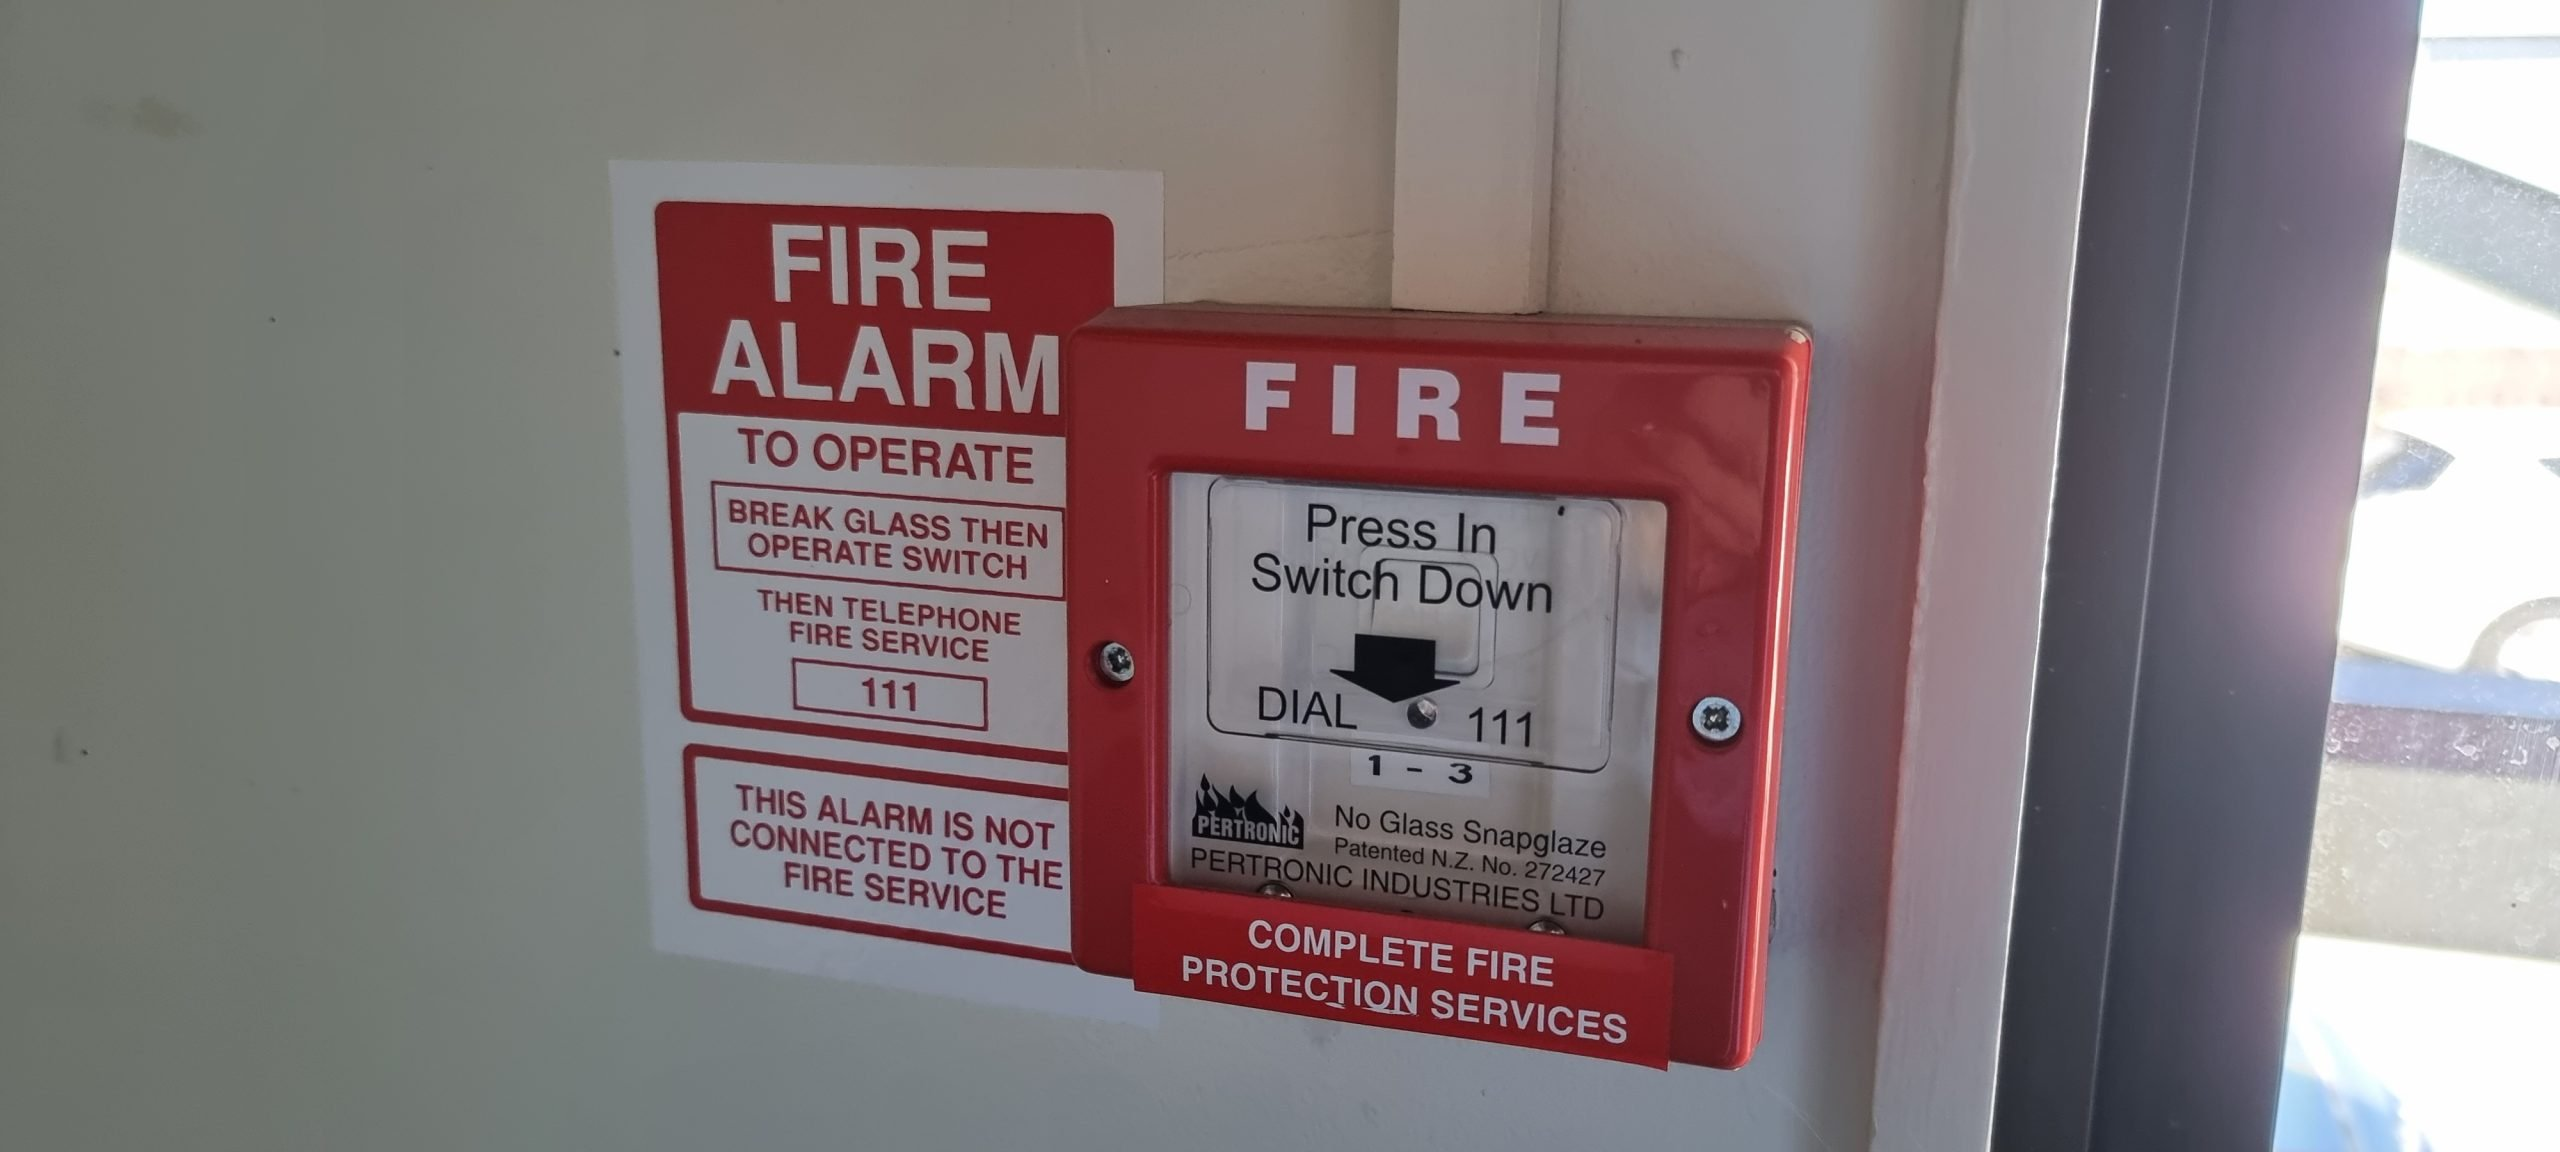 Complete Fire Protection, Services, Commercial buildings' compliance Service, Commercial buildings fire safety Service, Contact Us